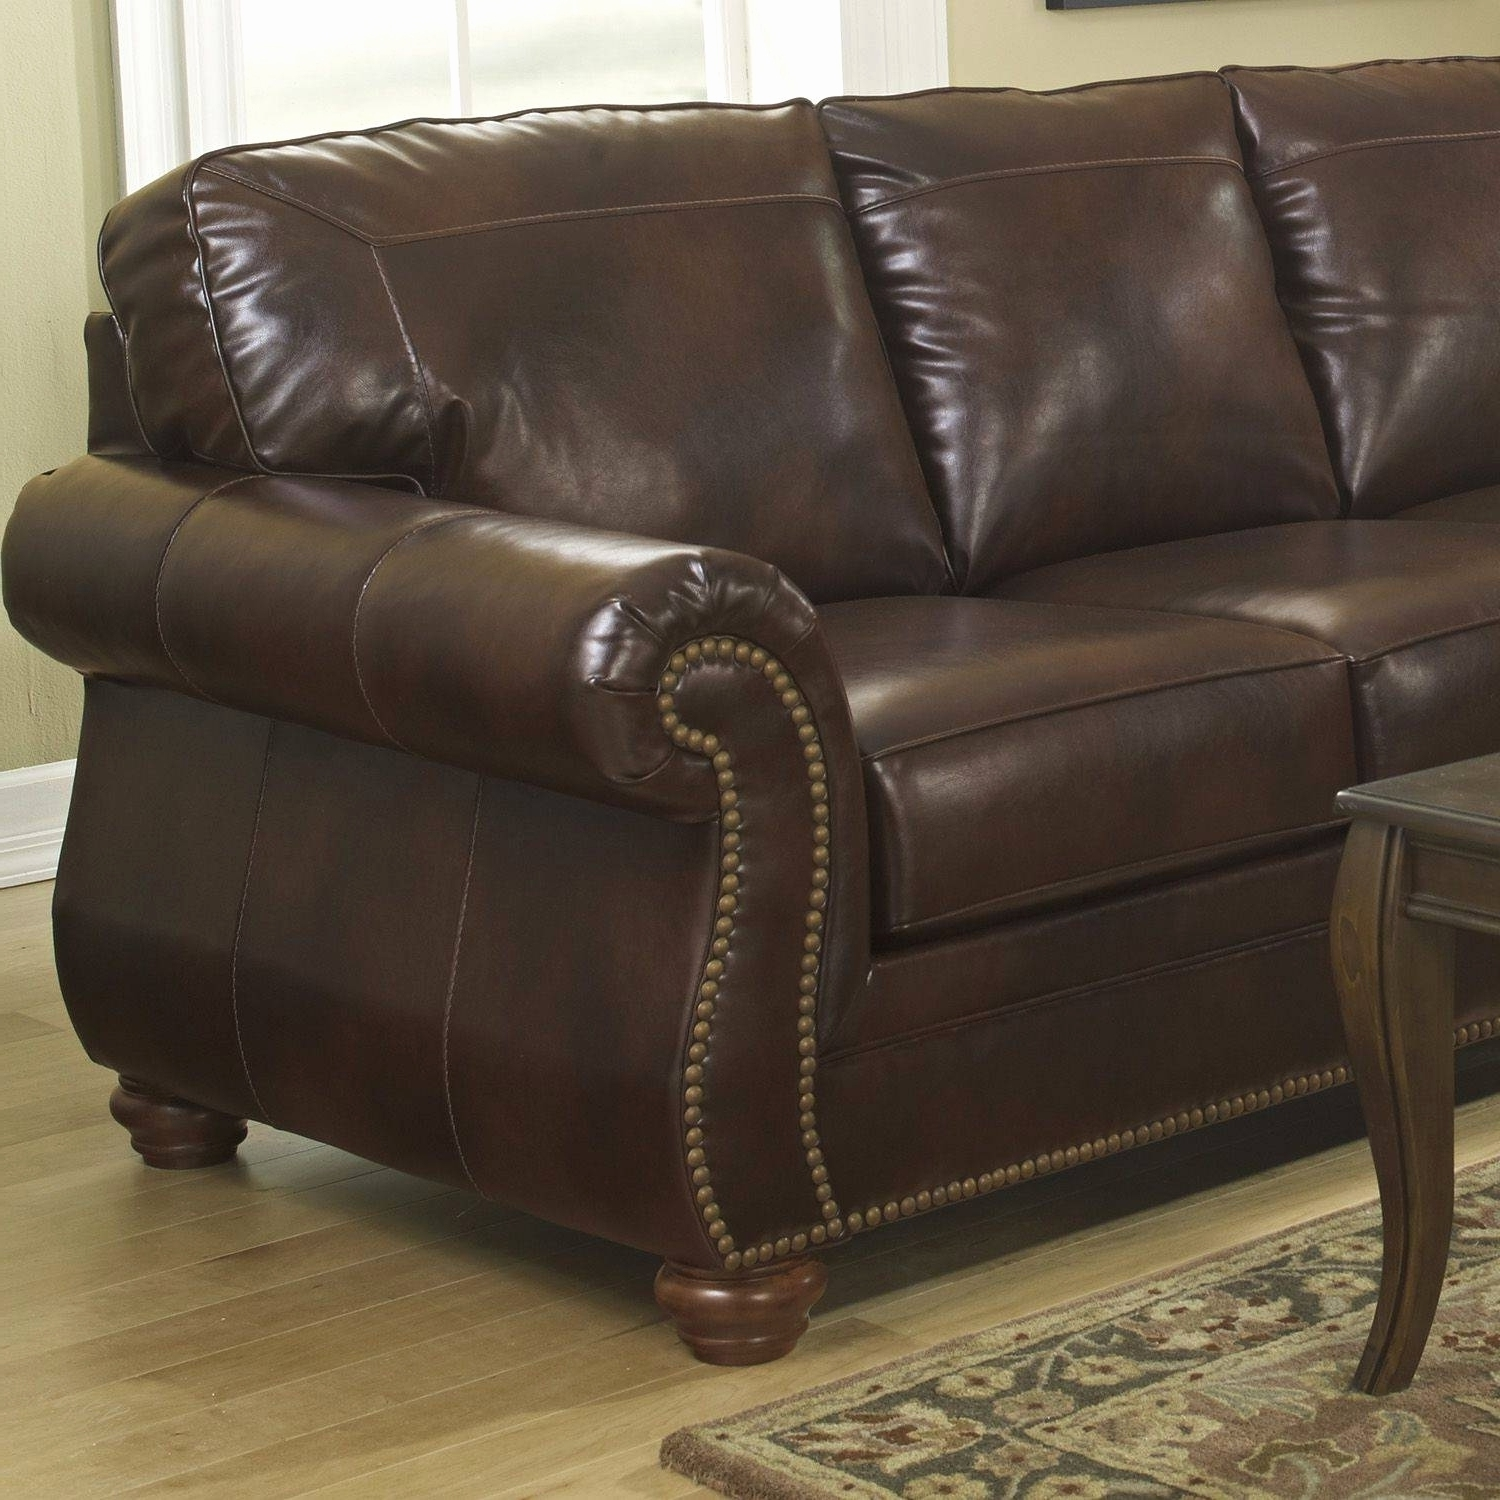 Newest Berkline Sofas For Fresh Nubuck Leather Sofa 2018 – Couches And Sofas Ideas (View 8 of 15)